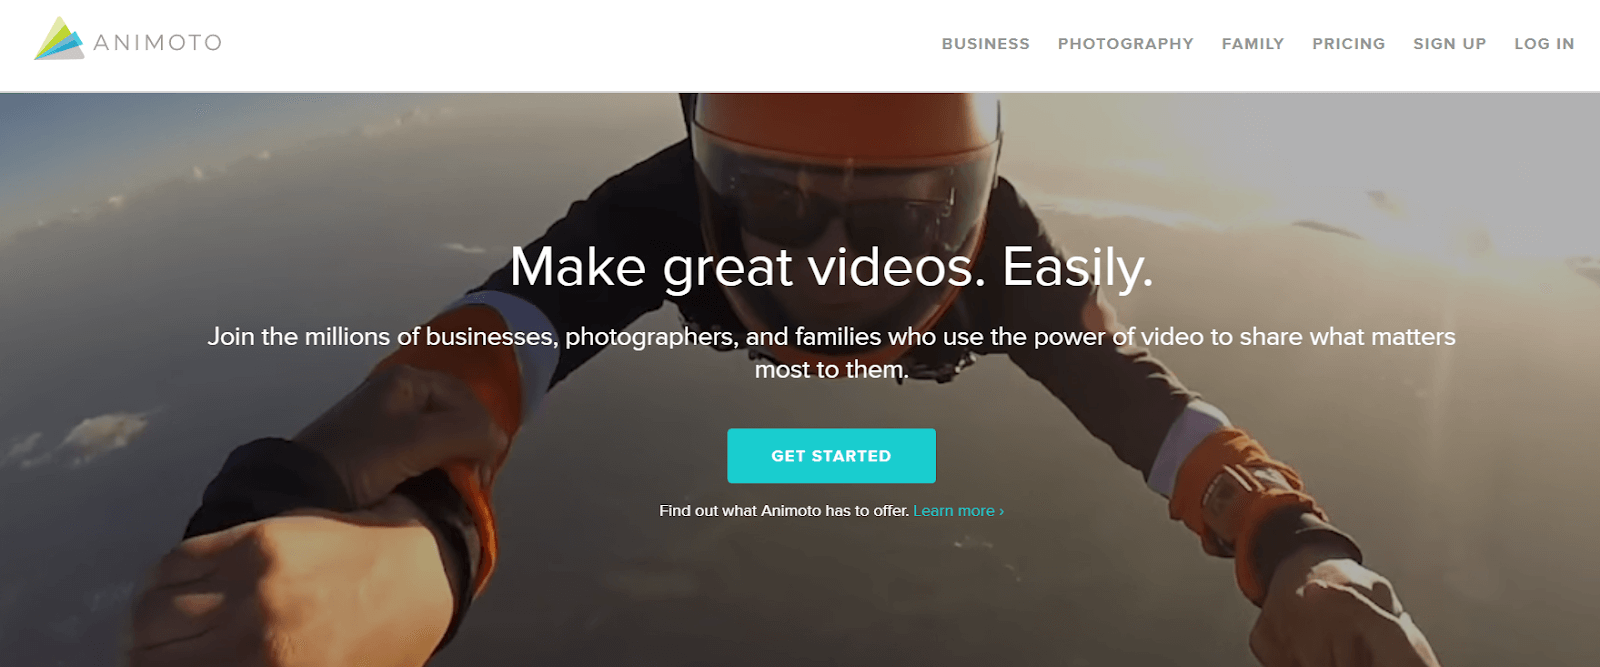 Animoto Video Marketing Tool